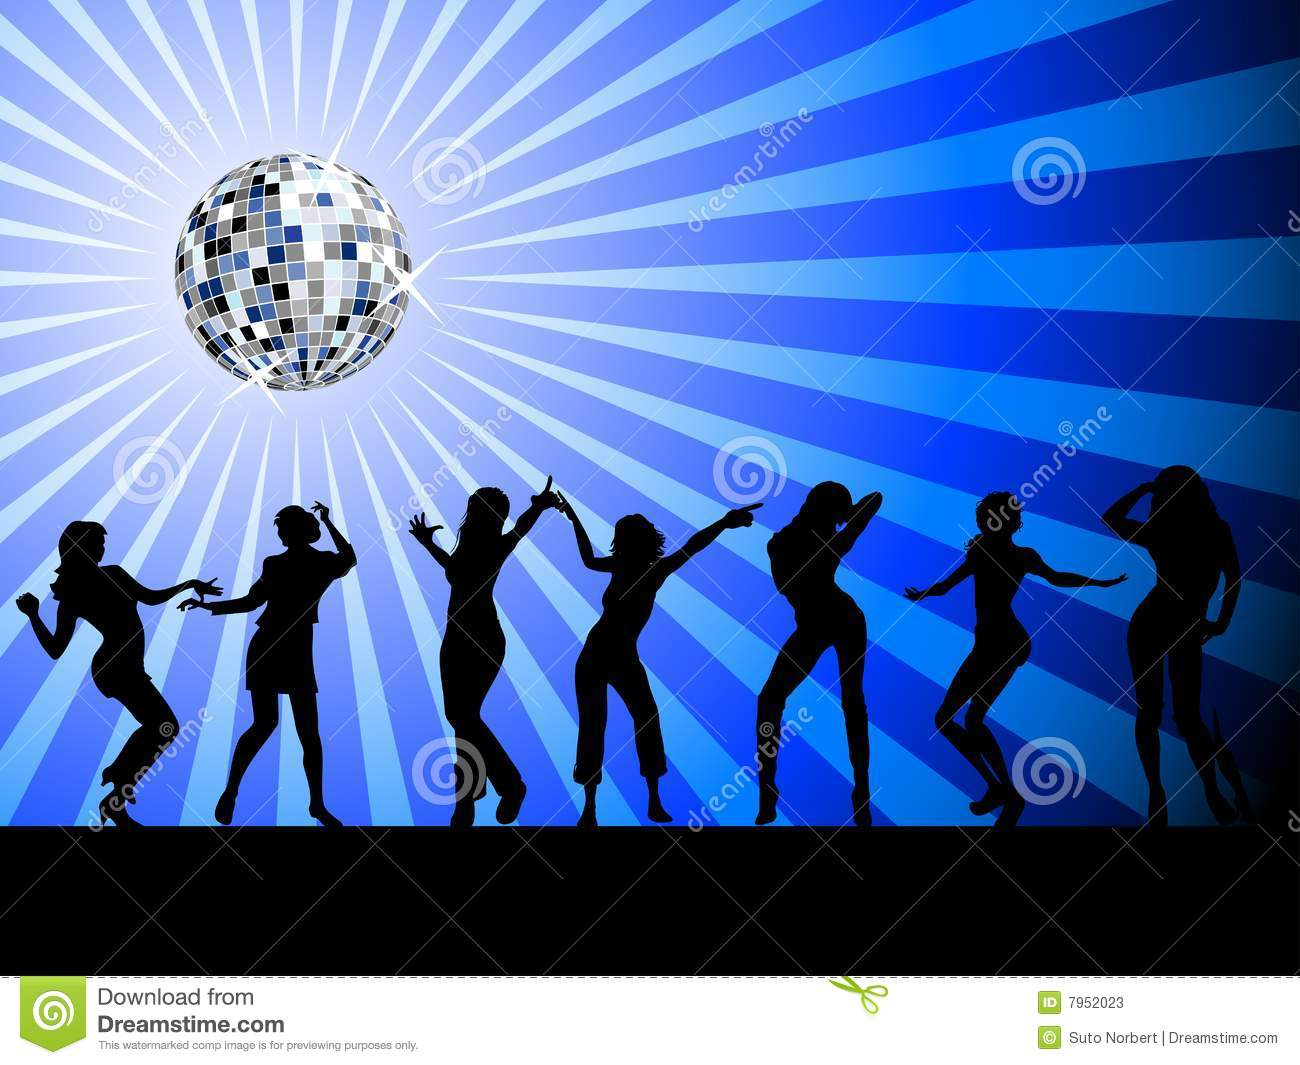 Silhouettes of people dancing on the dancefloor stock for 1234 get on the dance floor songs download